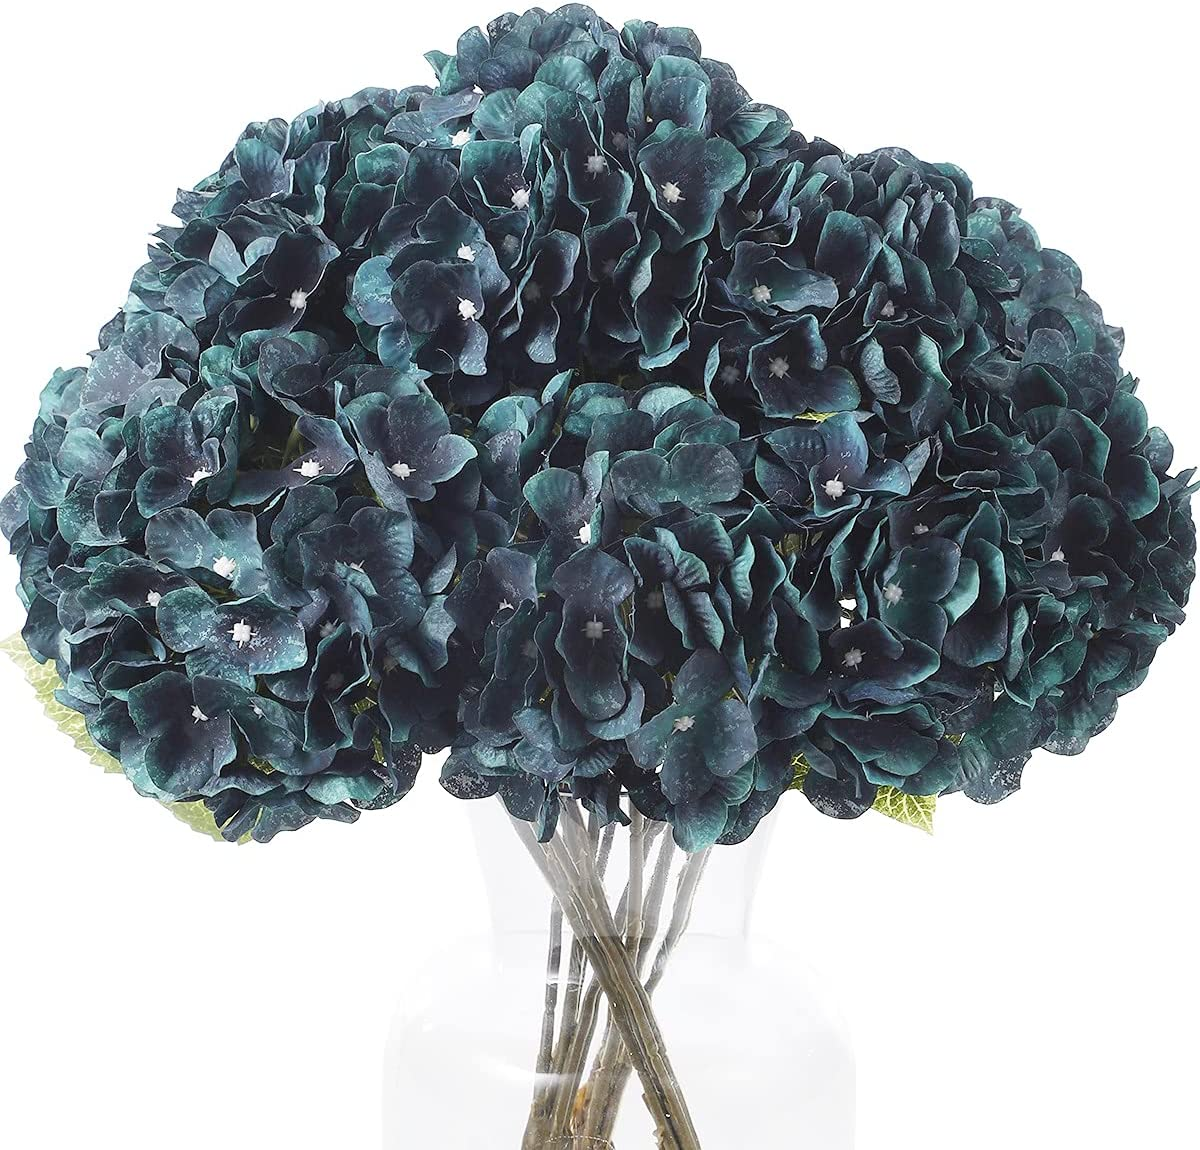 Kimura's Cabin Blue Silk Flower Cheap mail order shopping Flowers Artificial Hydrangea Spring new work one after another Flo